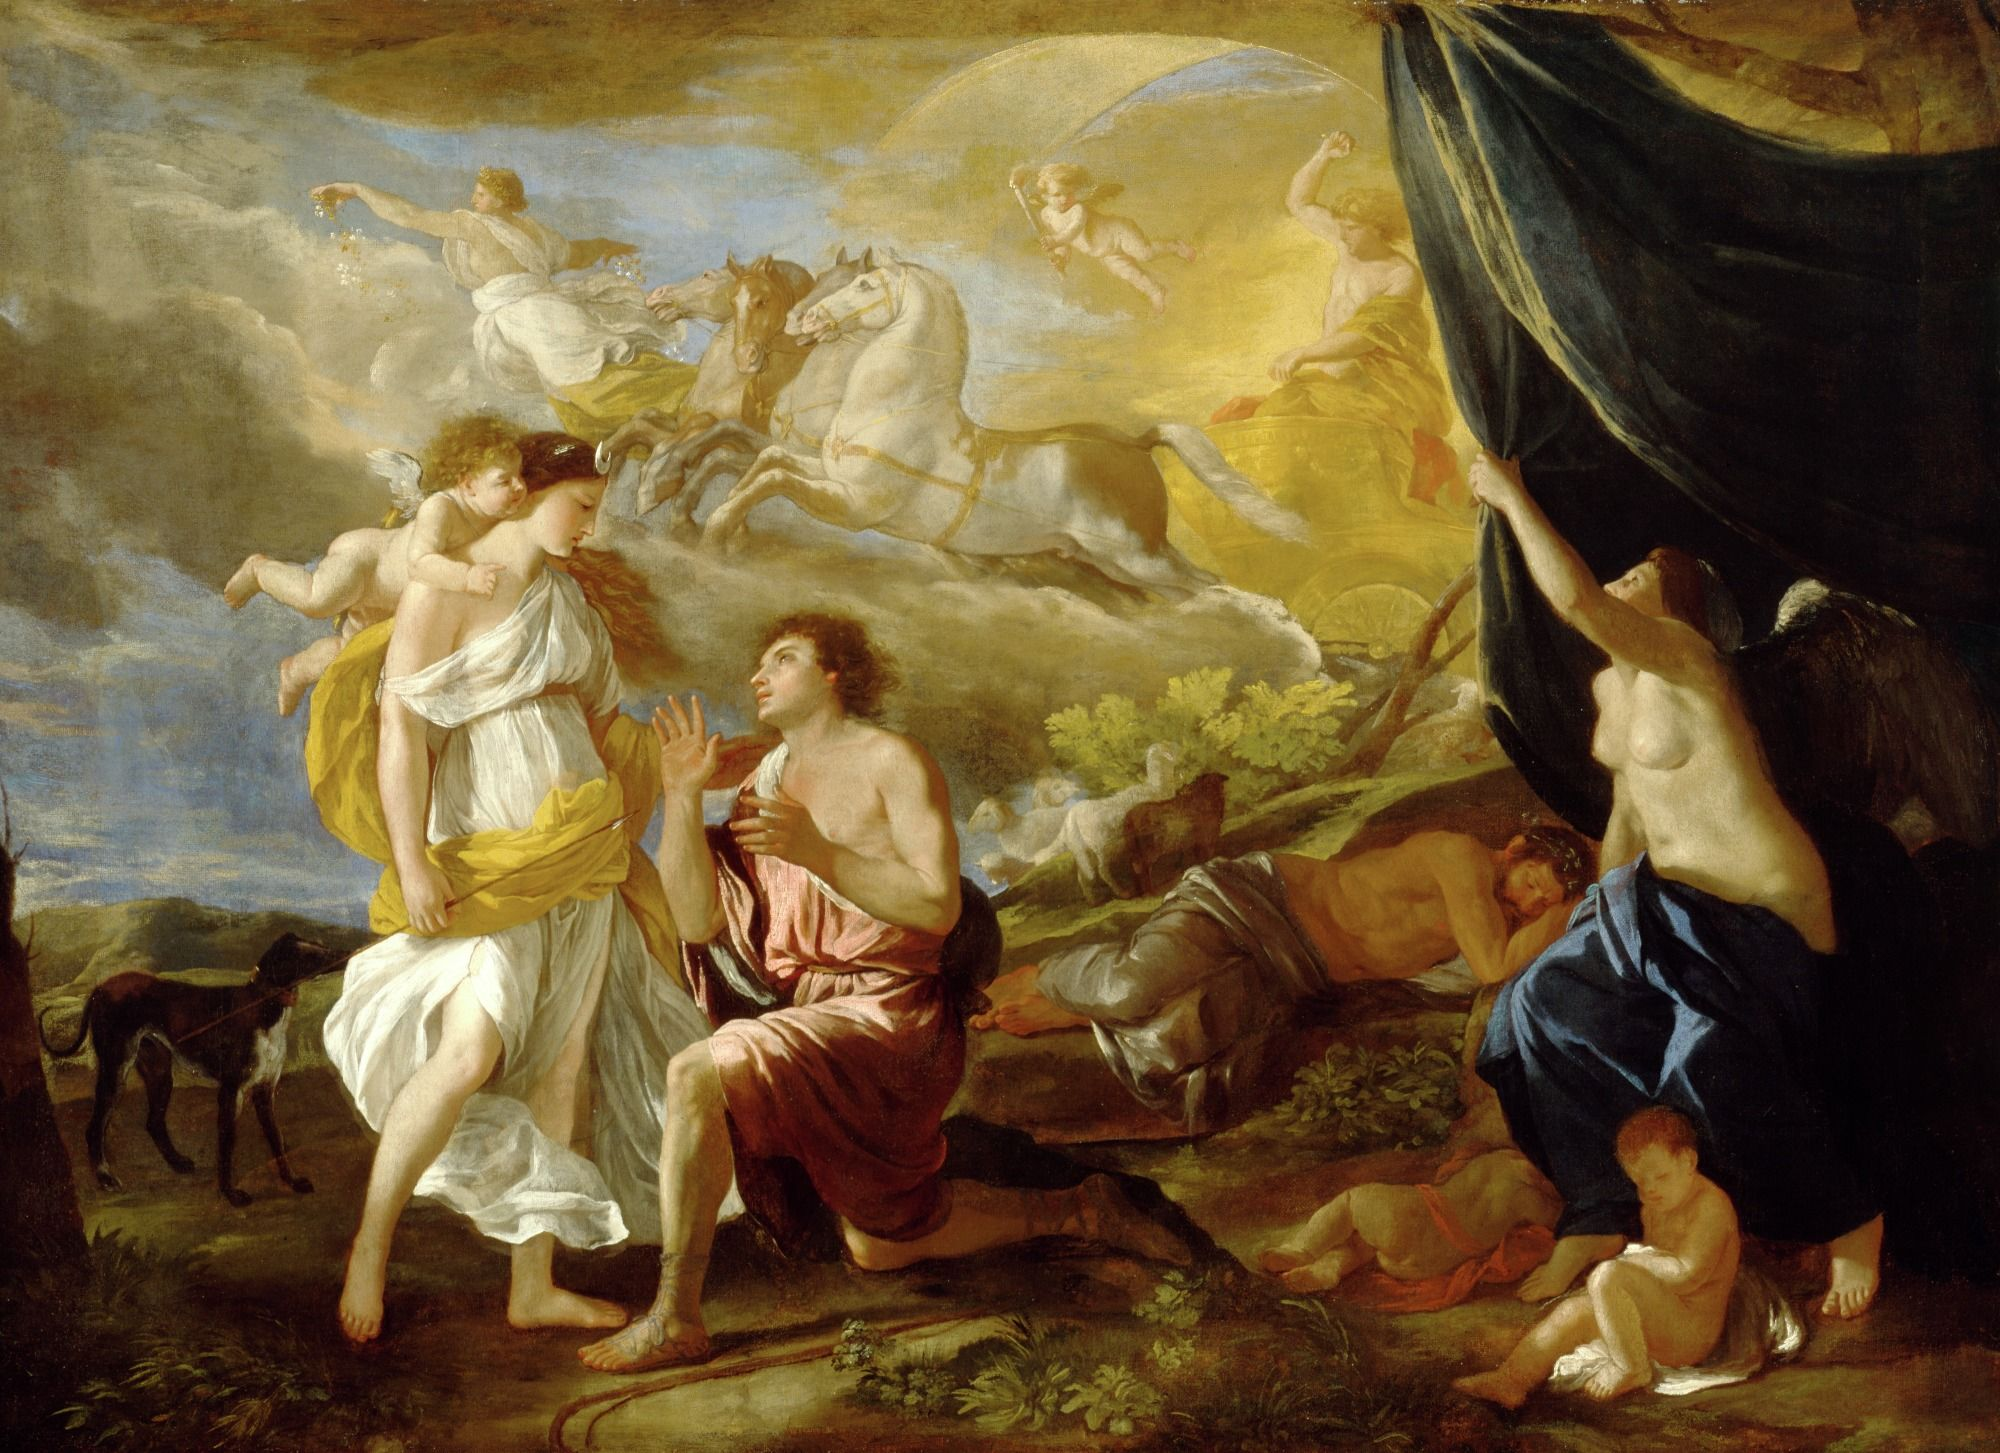 greek mythology and nicolas poussin essay Plutarch essay solon and  plutarch deliberately devised scripts in manners such that he could revise the greek religions and platonism  nicolas poussin greek.